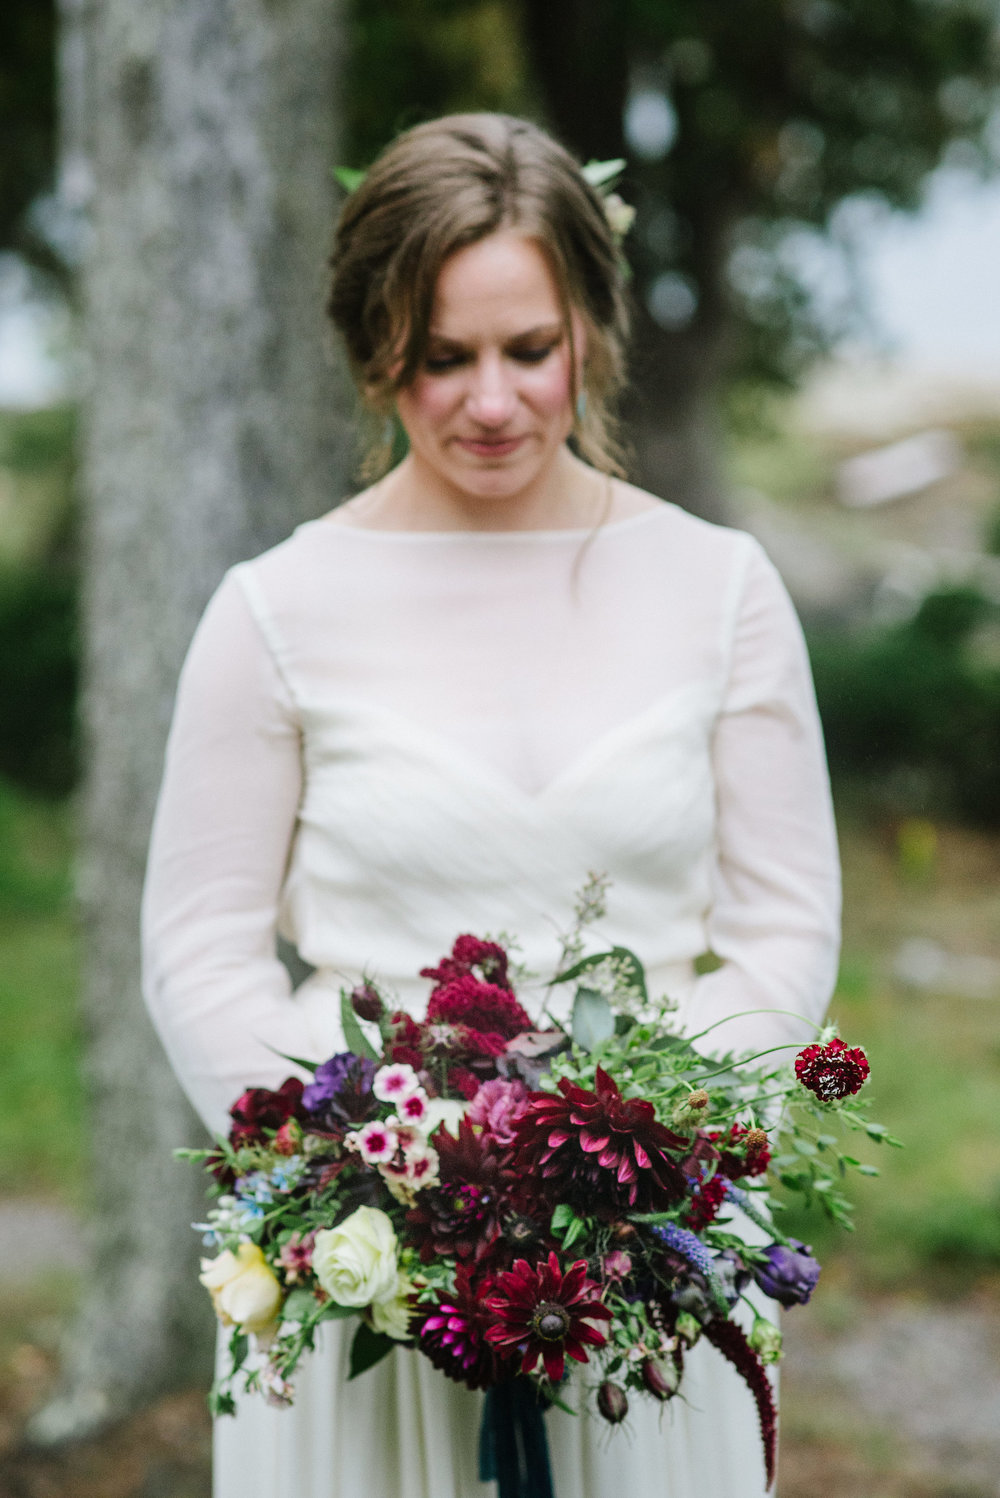 Watershed_Floral_Harpswell_Maine_Coastal_Wedding_0391.JPG